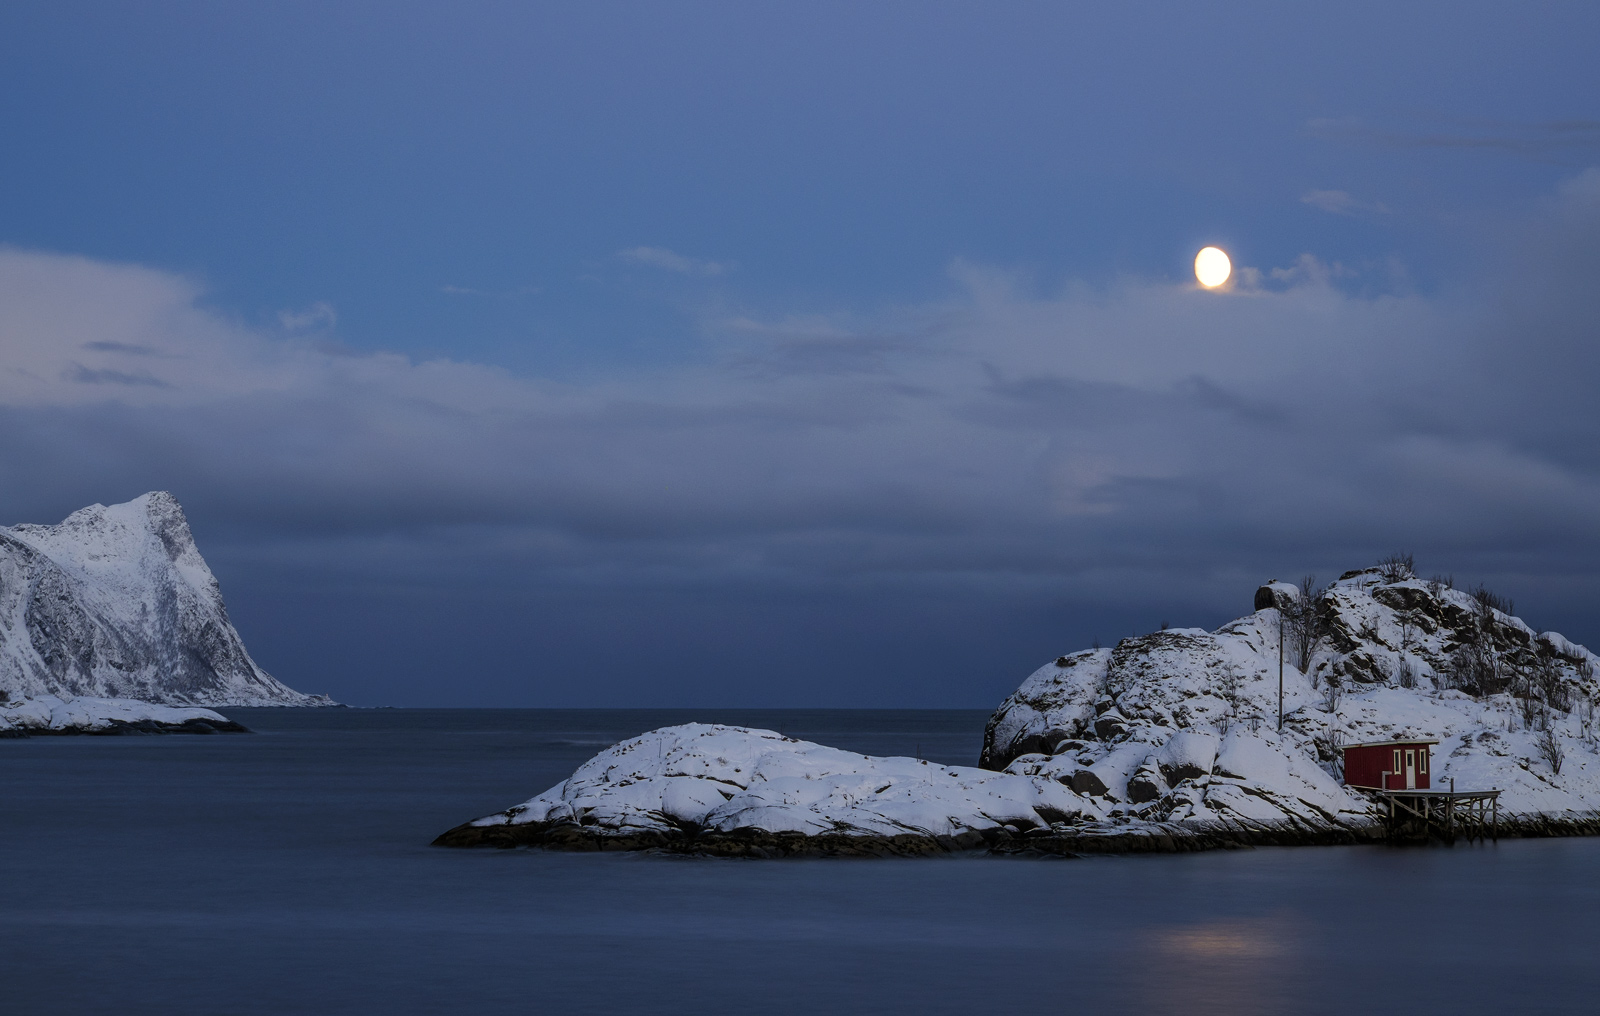 Moon set over Hamn i Senja, and the delicious snow covered islands surrounding this tiny hamlet.  The water was quite still...